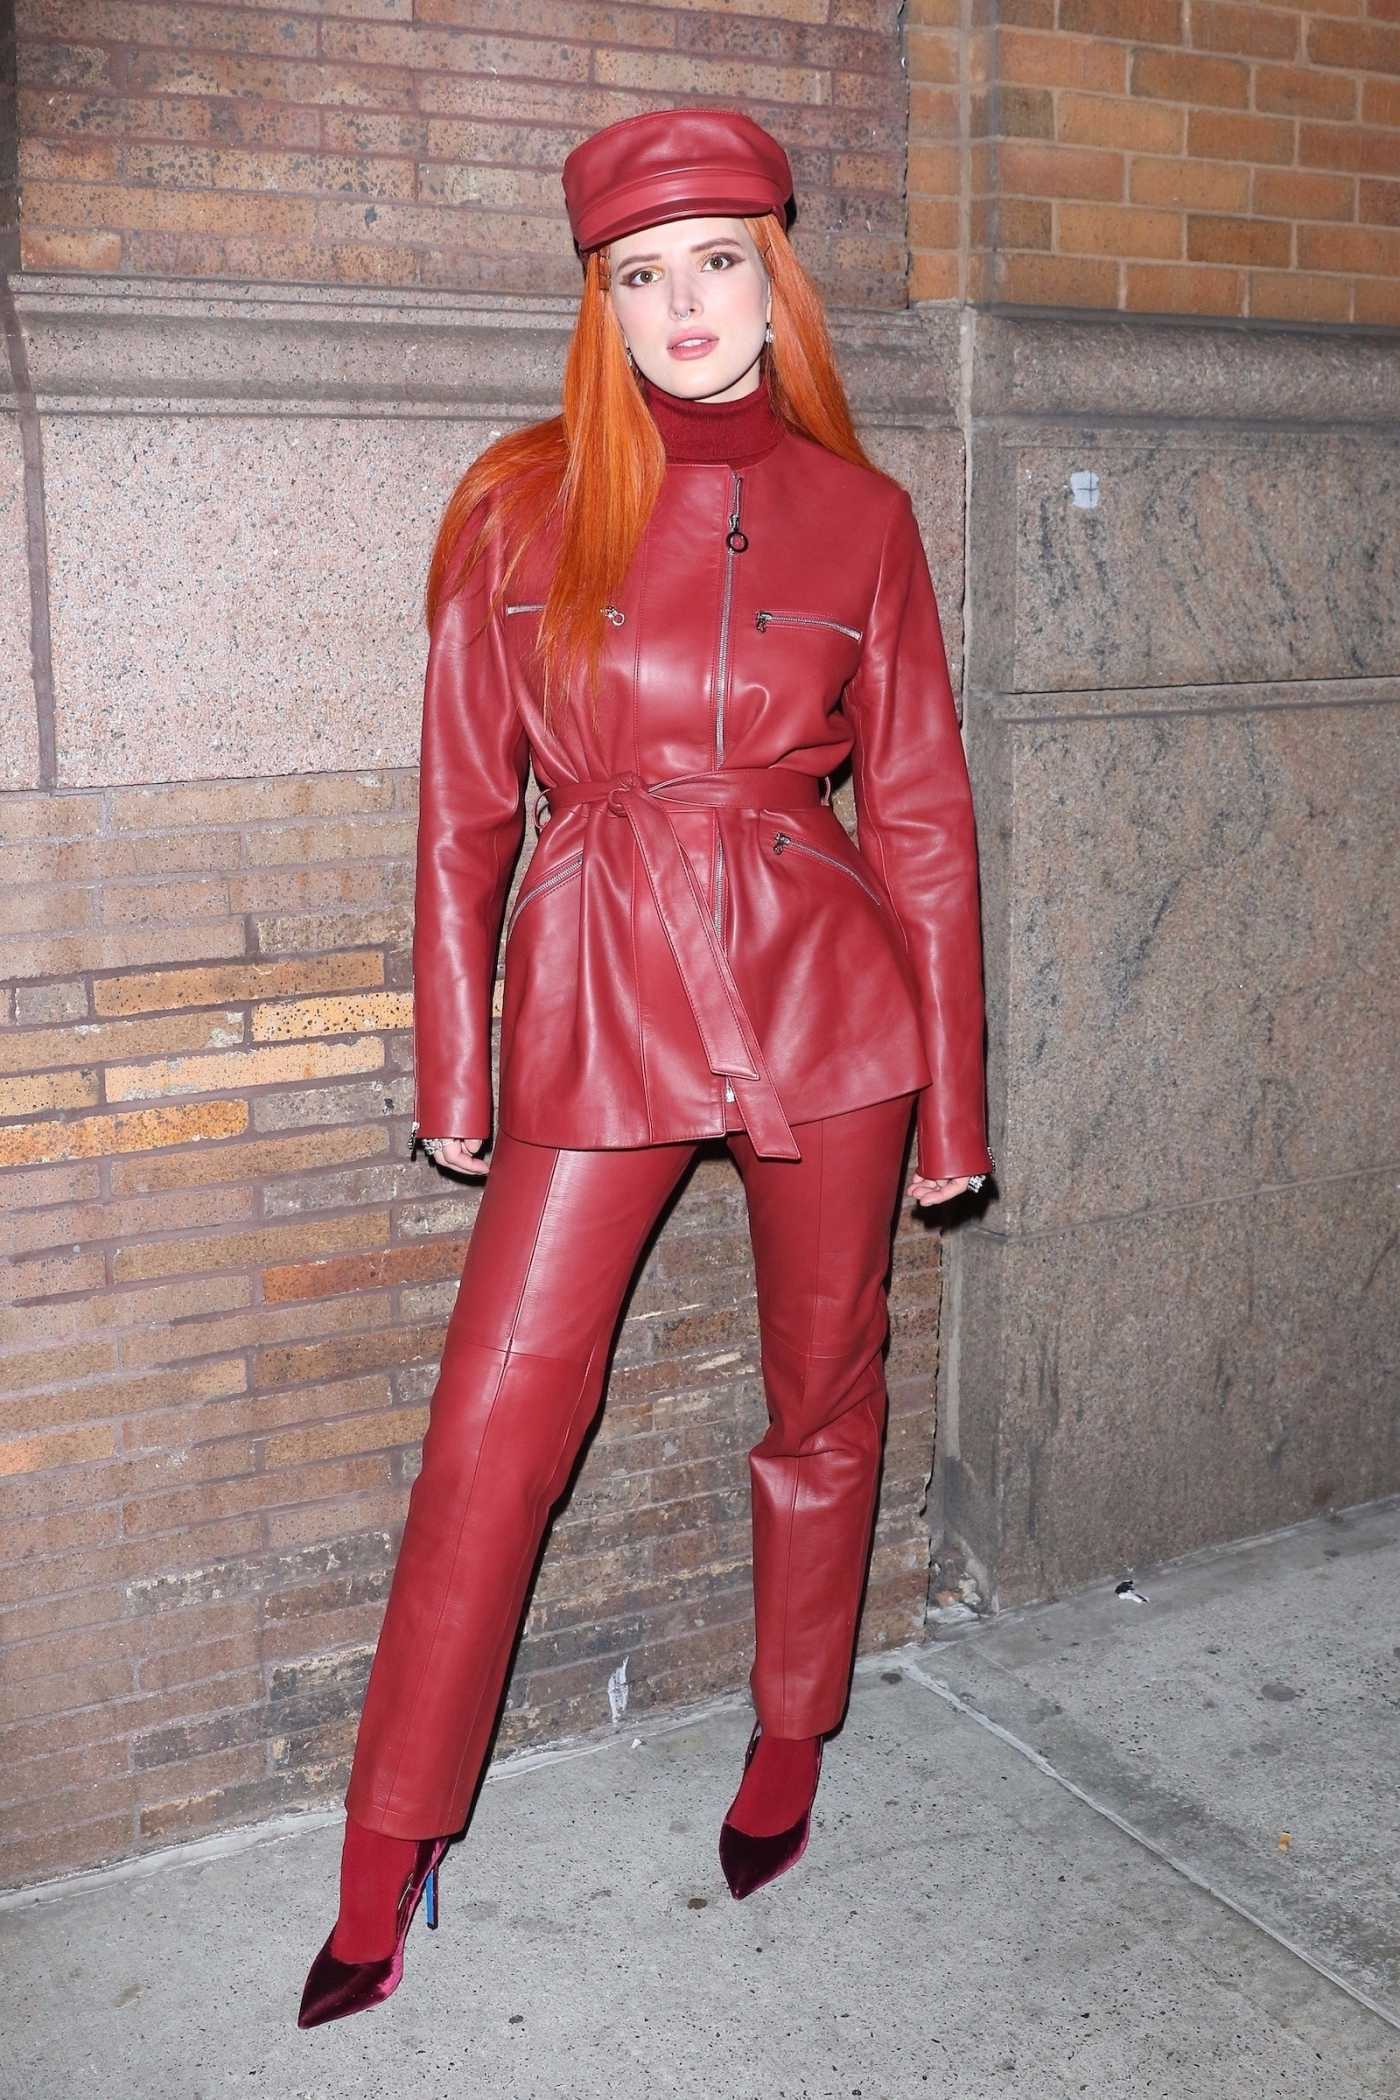 Bella Thorne in a Red Leather Suit Leaves Her Performance at Carnegie Hall in NYC 03/25/2019